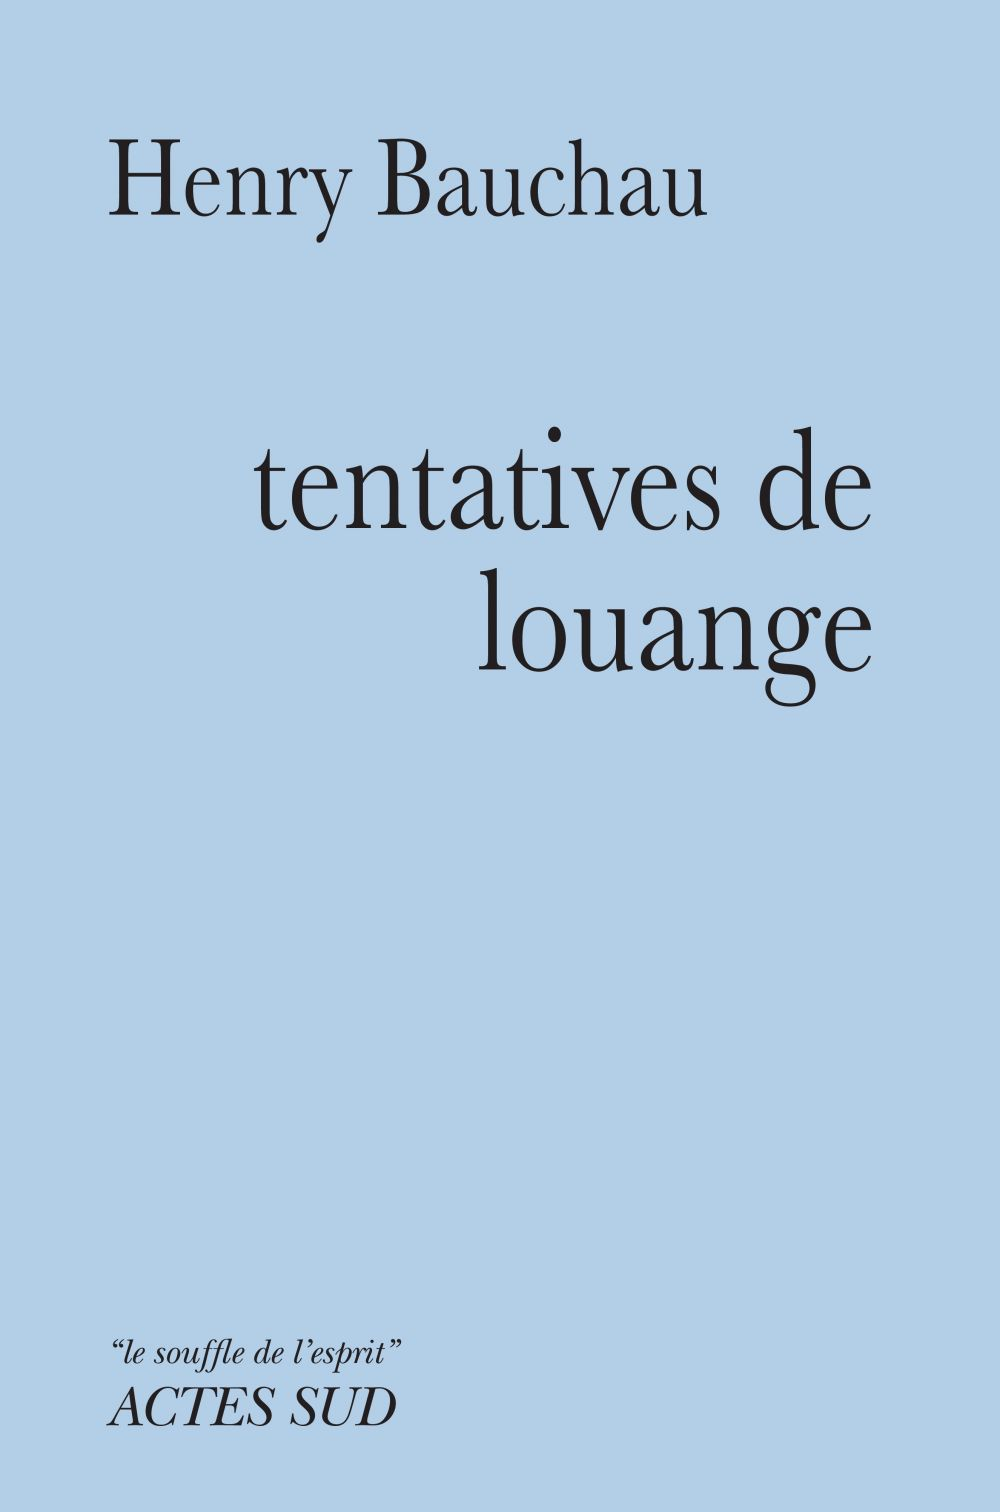 Tentatives de louange